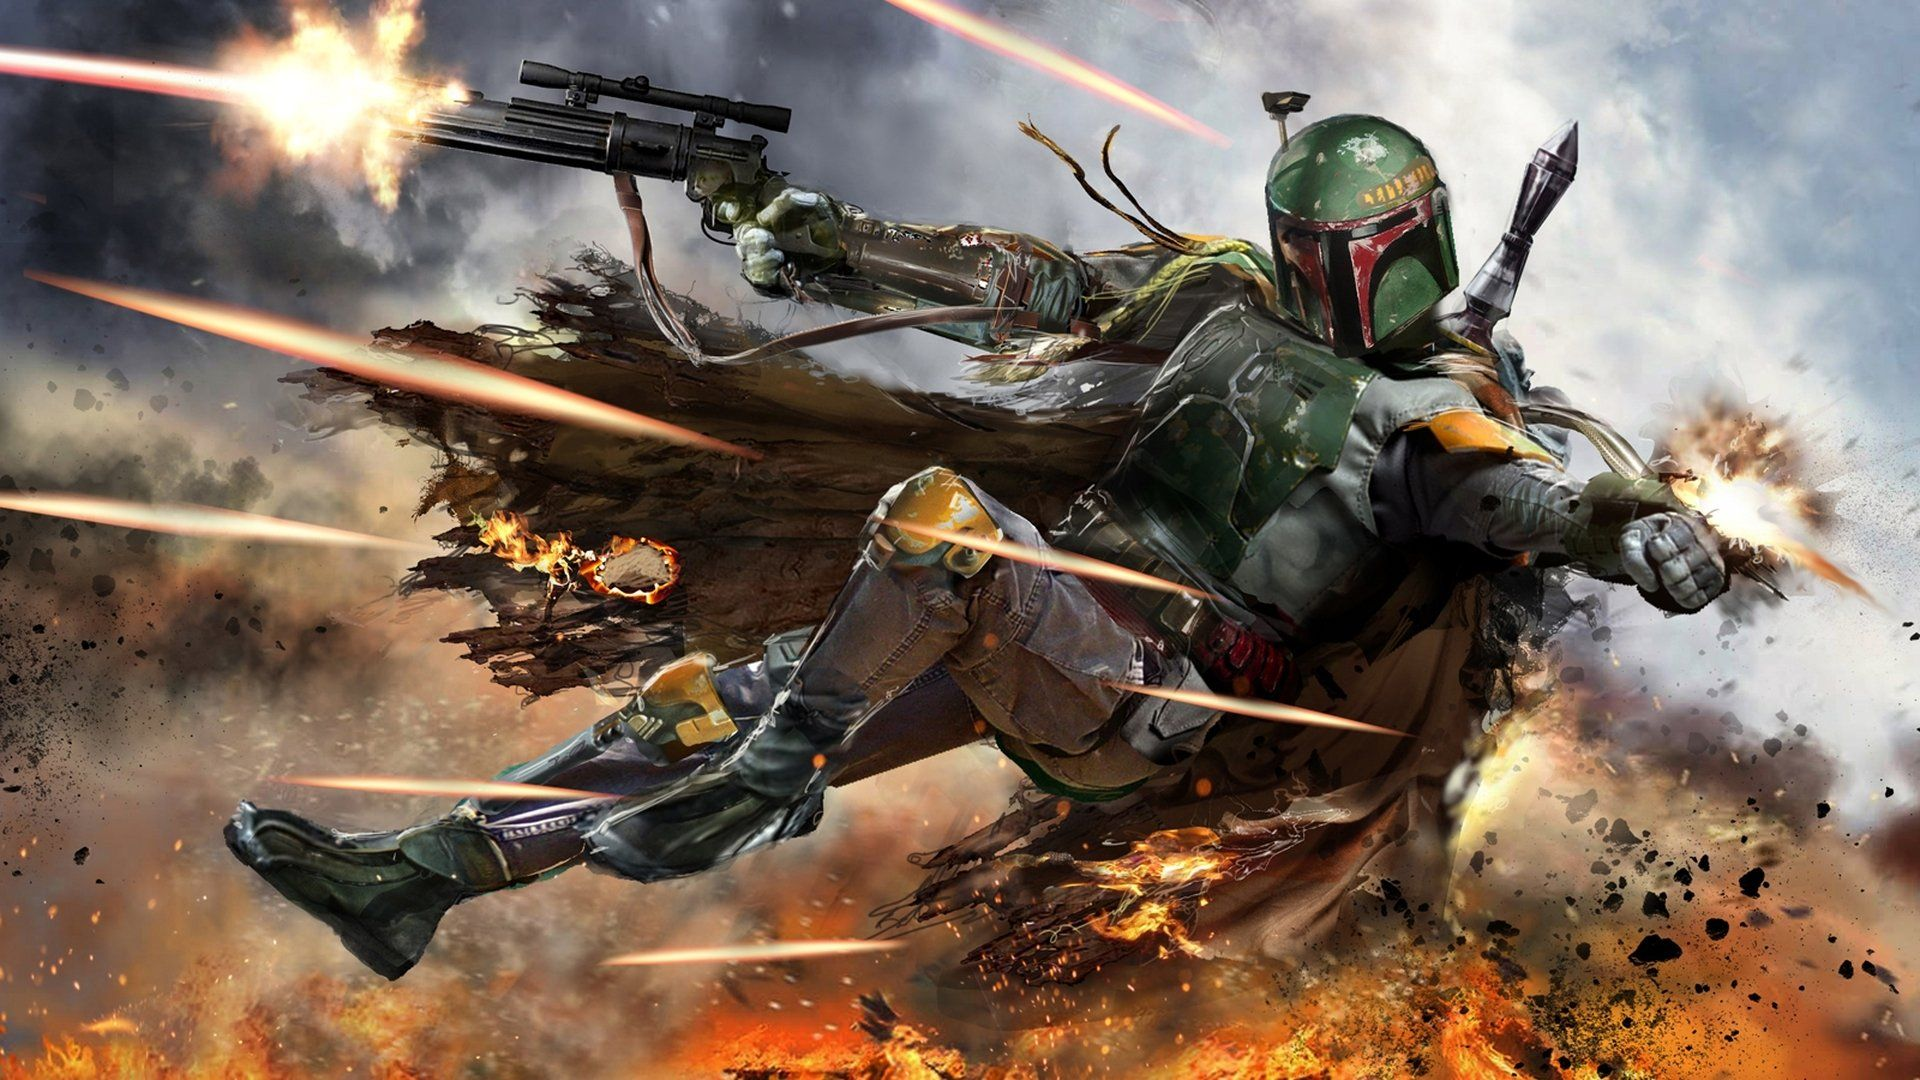 Star Wars Boba Fett Wallpapers Top Free Star Wars Boba Fett Backgrounds Wallpaperaccess